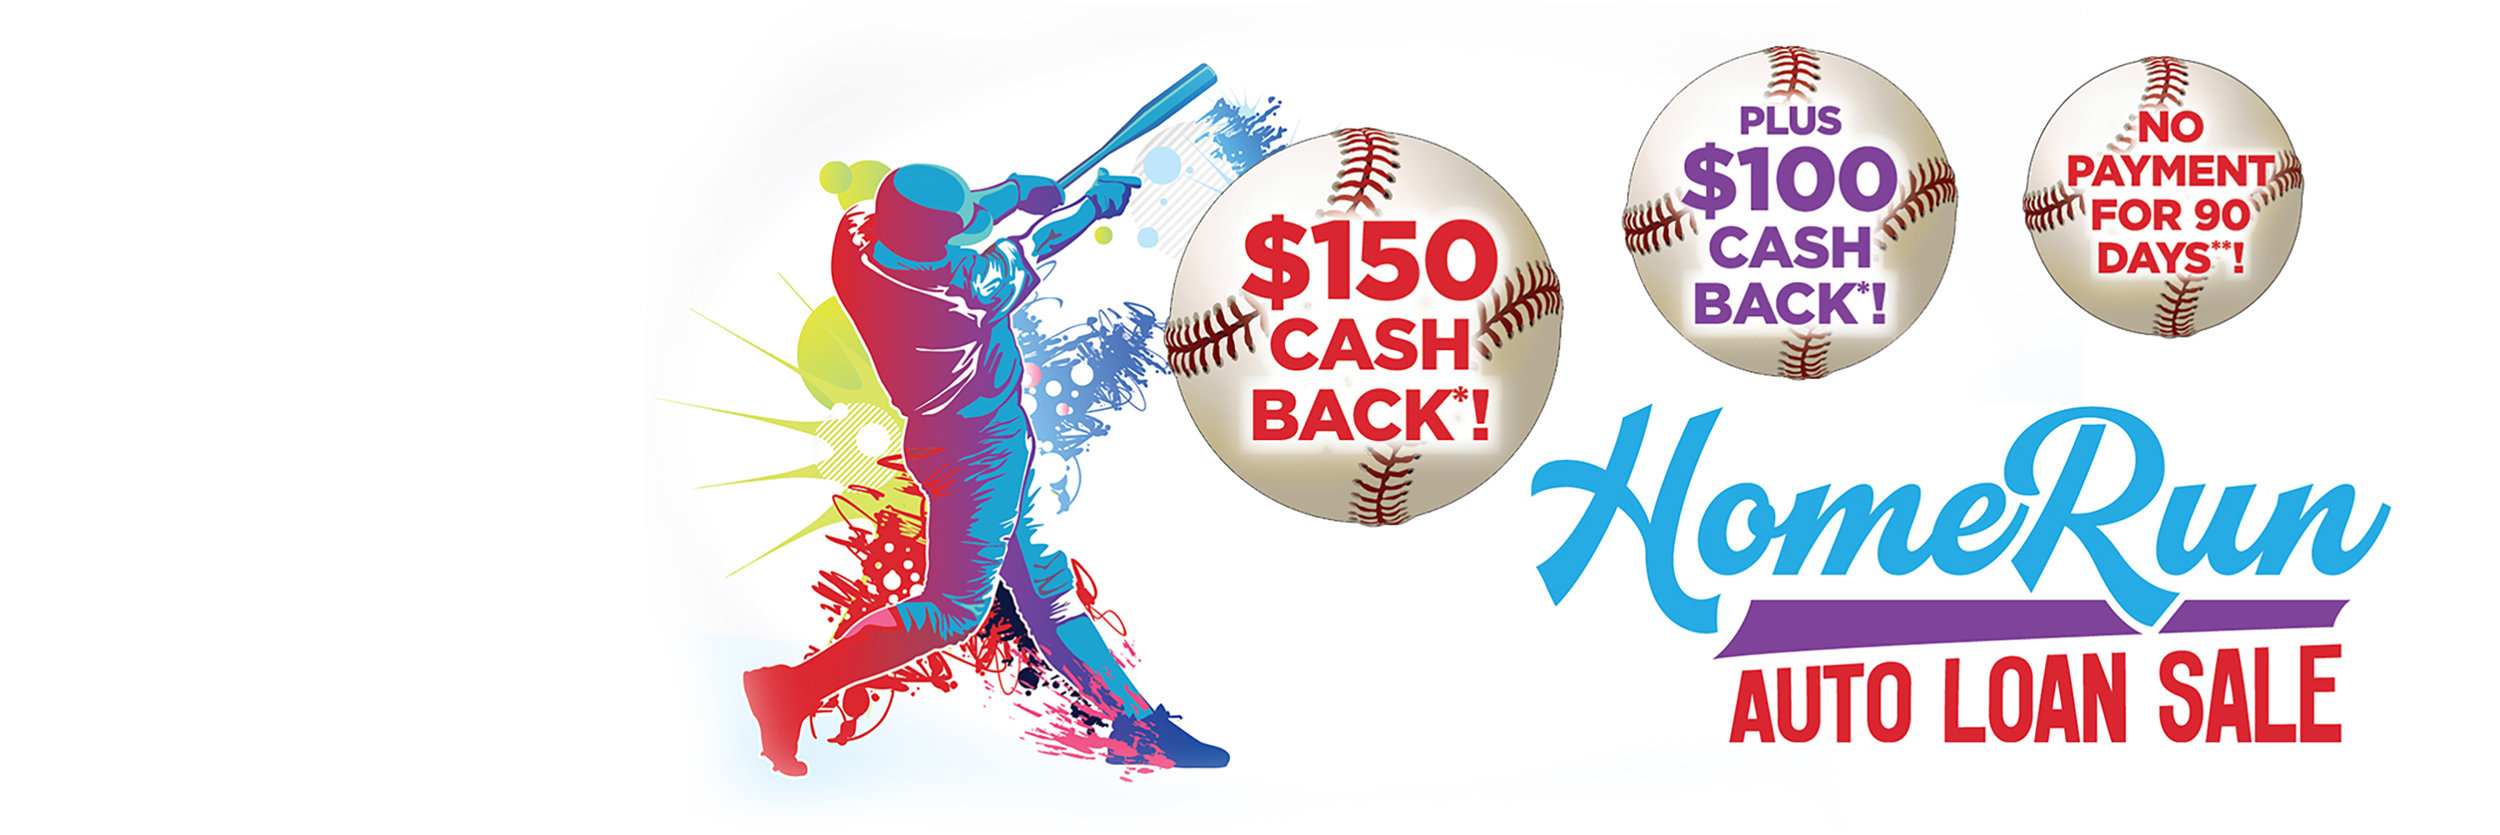 Home-Run-Auto-Sale-$150-Cash-Back*!-Plus-$100-Cash-Back*!-No-Payment-For-90-Days*!